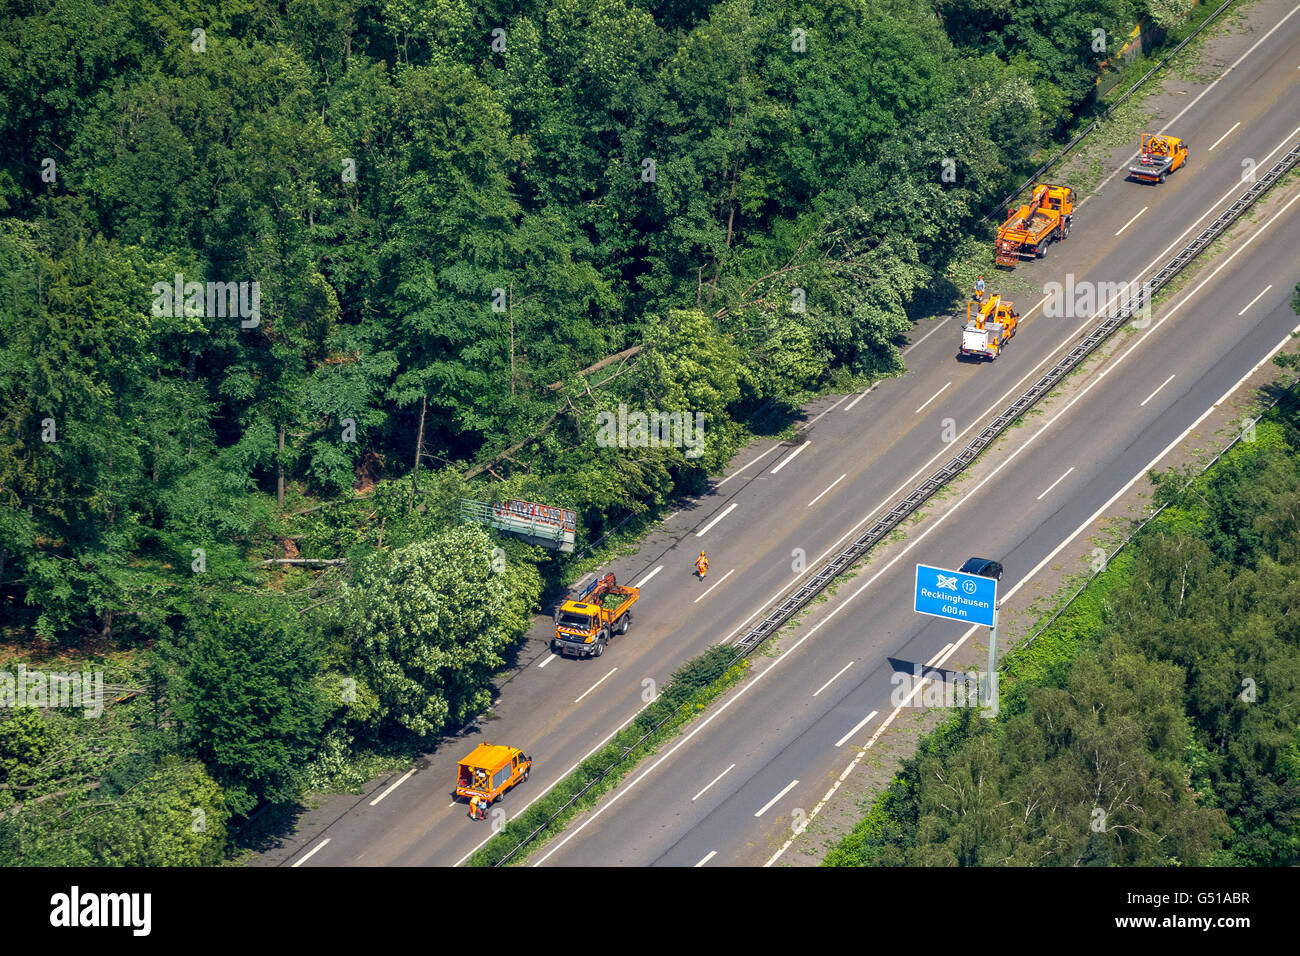 Aerial view, traffic congestion on the A43 towards Herne in Pattern Recklinghausen, storm, storm damage, bent trees, Stock Photo